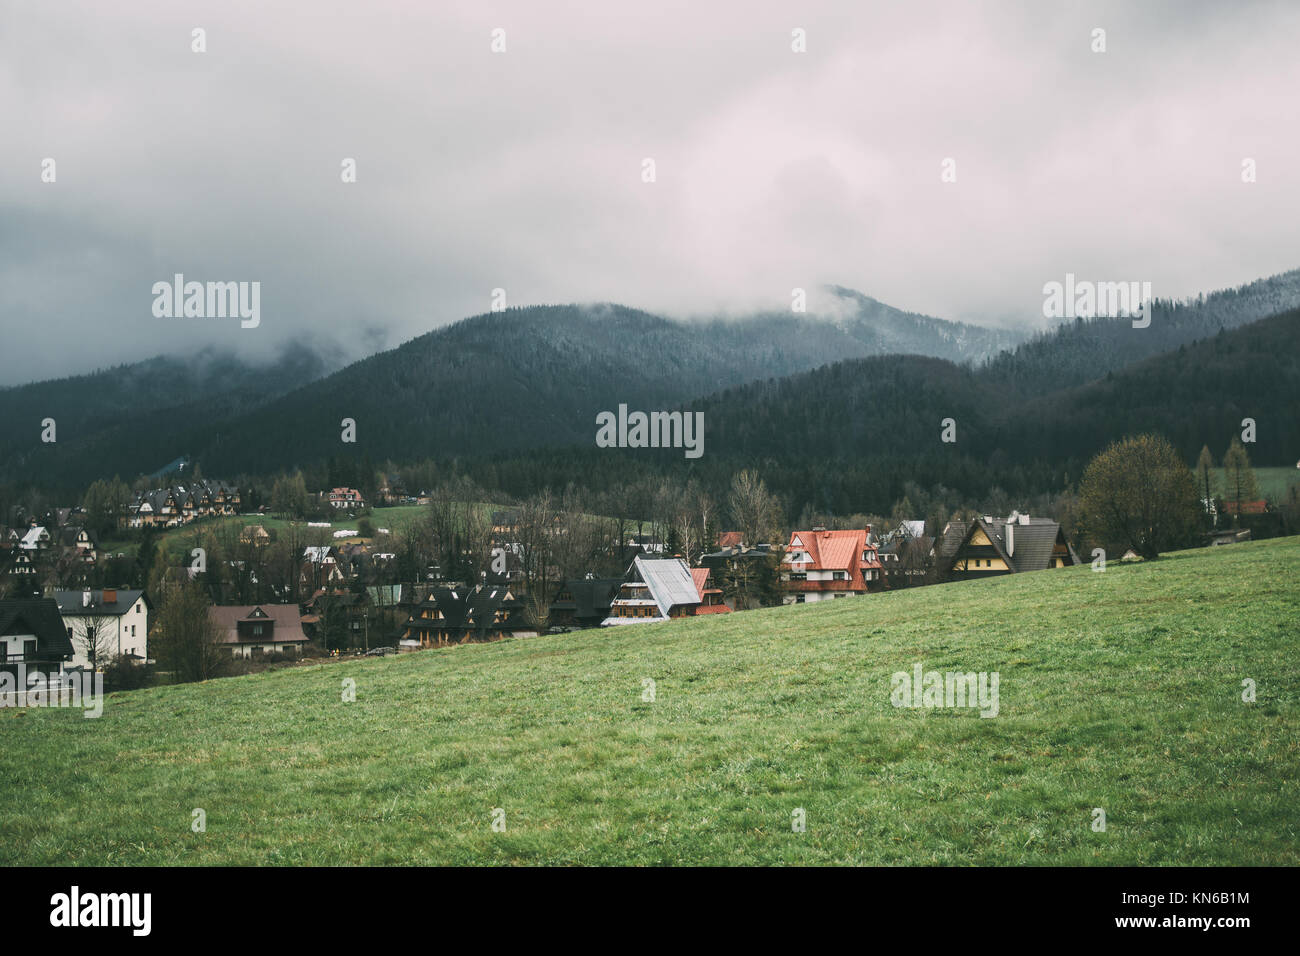 Zakopane in spring with the Tatra mountains covered in clouds on an overcast day - Stock Image